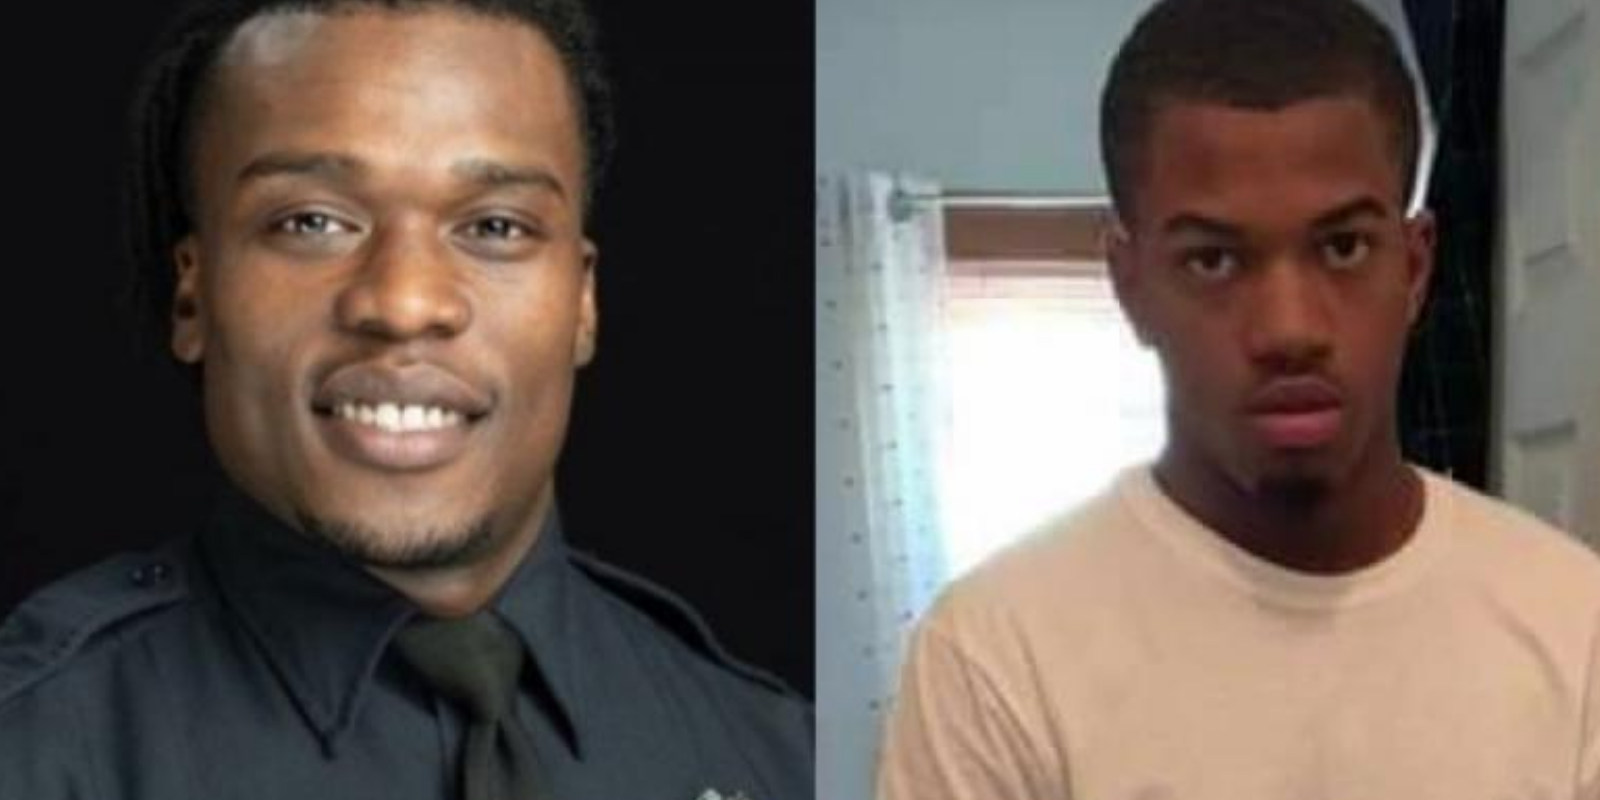 BREAKING: Wisconsin braces for unrest as police officer not charged in shooting death of Alvin Cole